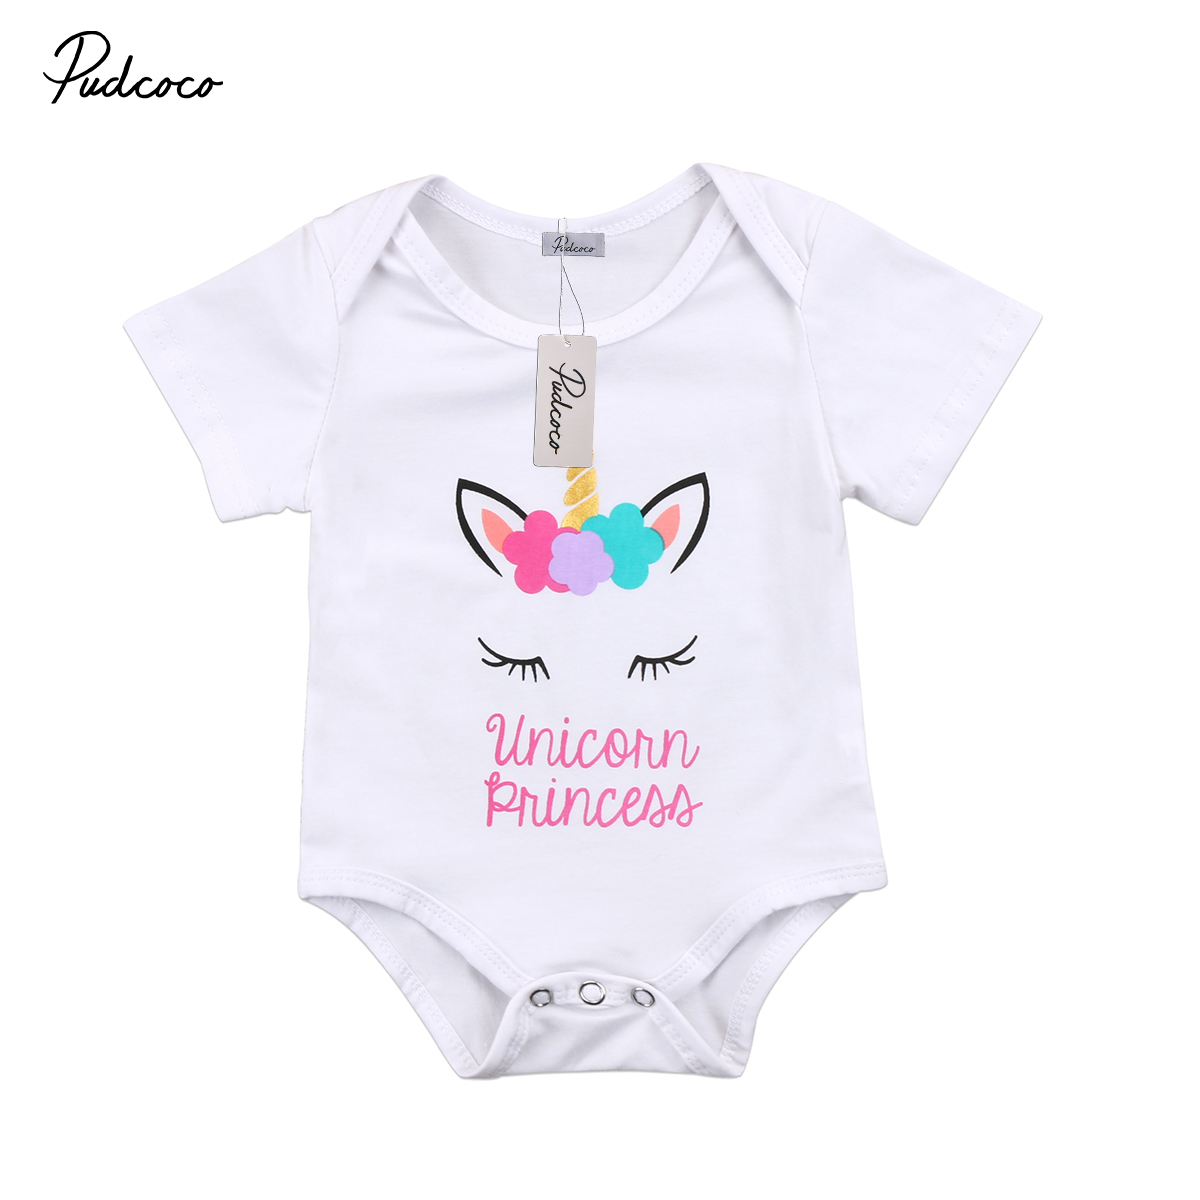 Cute Baby Clothing Newborn Infant Baby Girl Unicorn Short sleeve Romper Jumpsuit Baby Cotton Clothes Outfit 0-18M